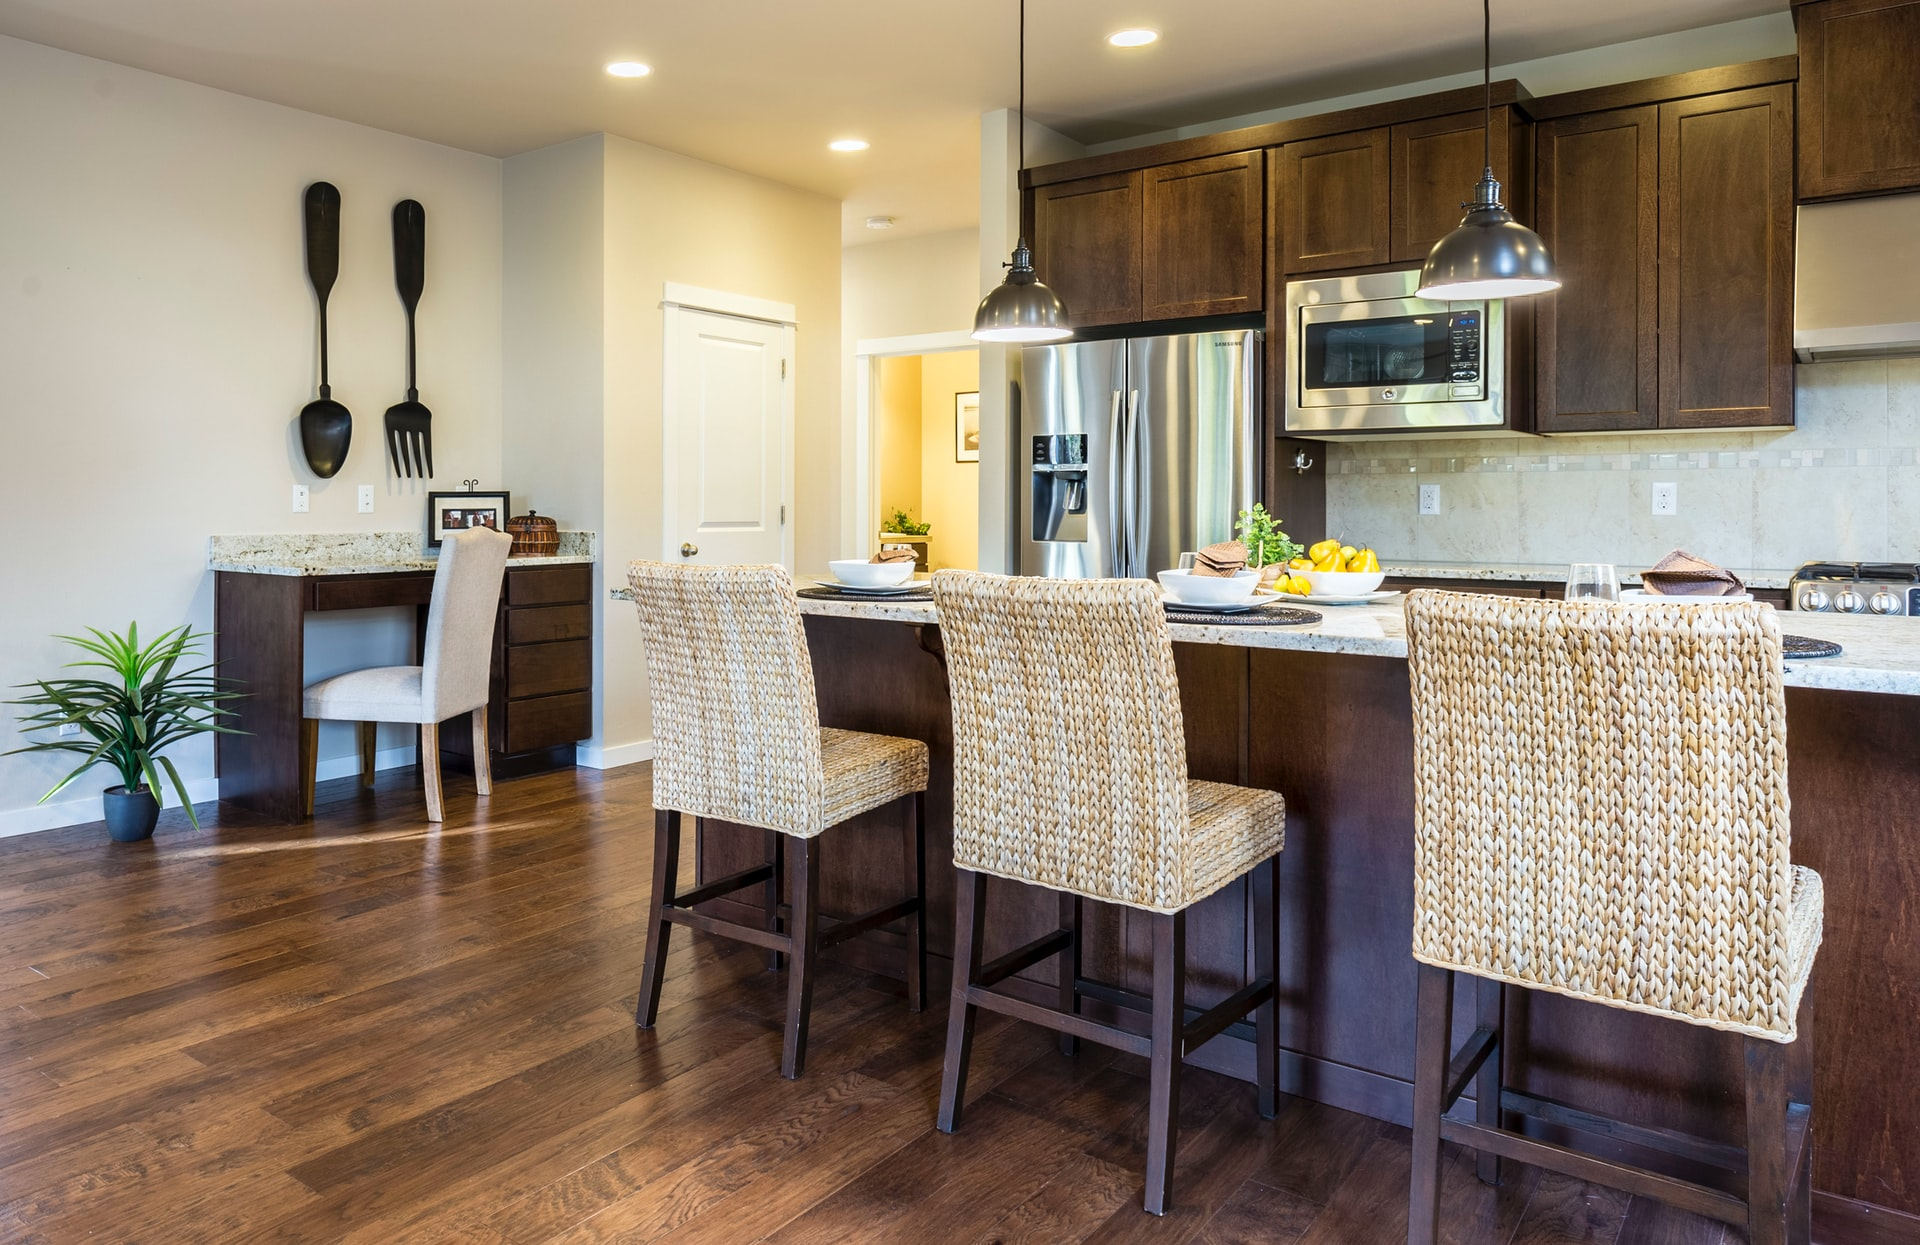 The 6 Steps to a Successful Kitchen Remodel